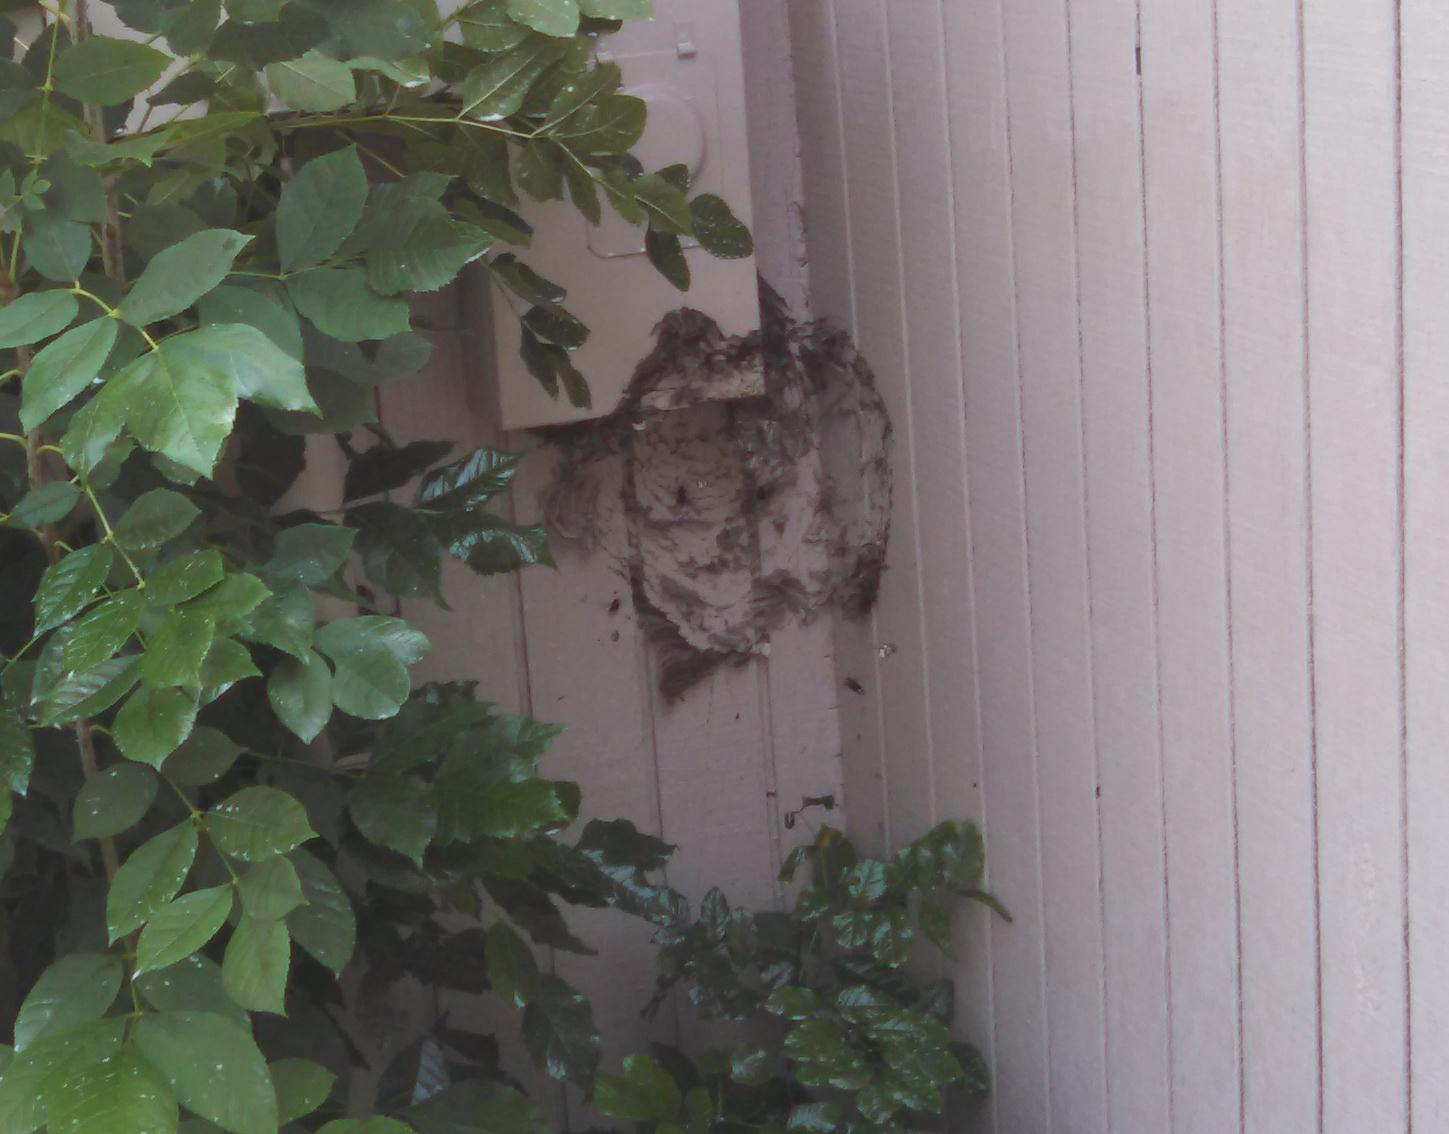 Removed nest in Allentown, New Jersey